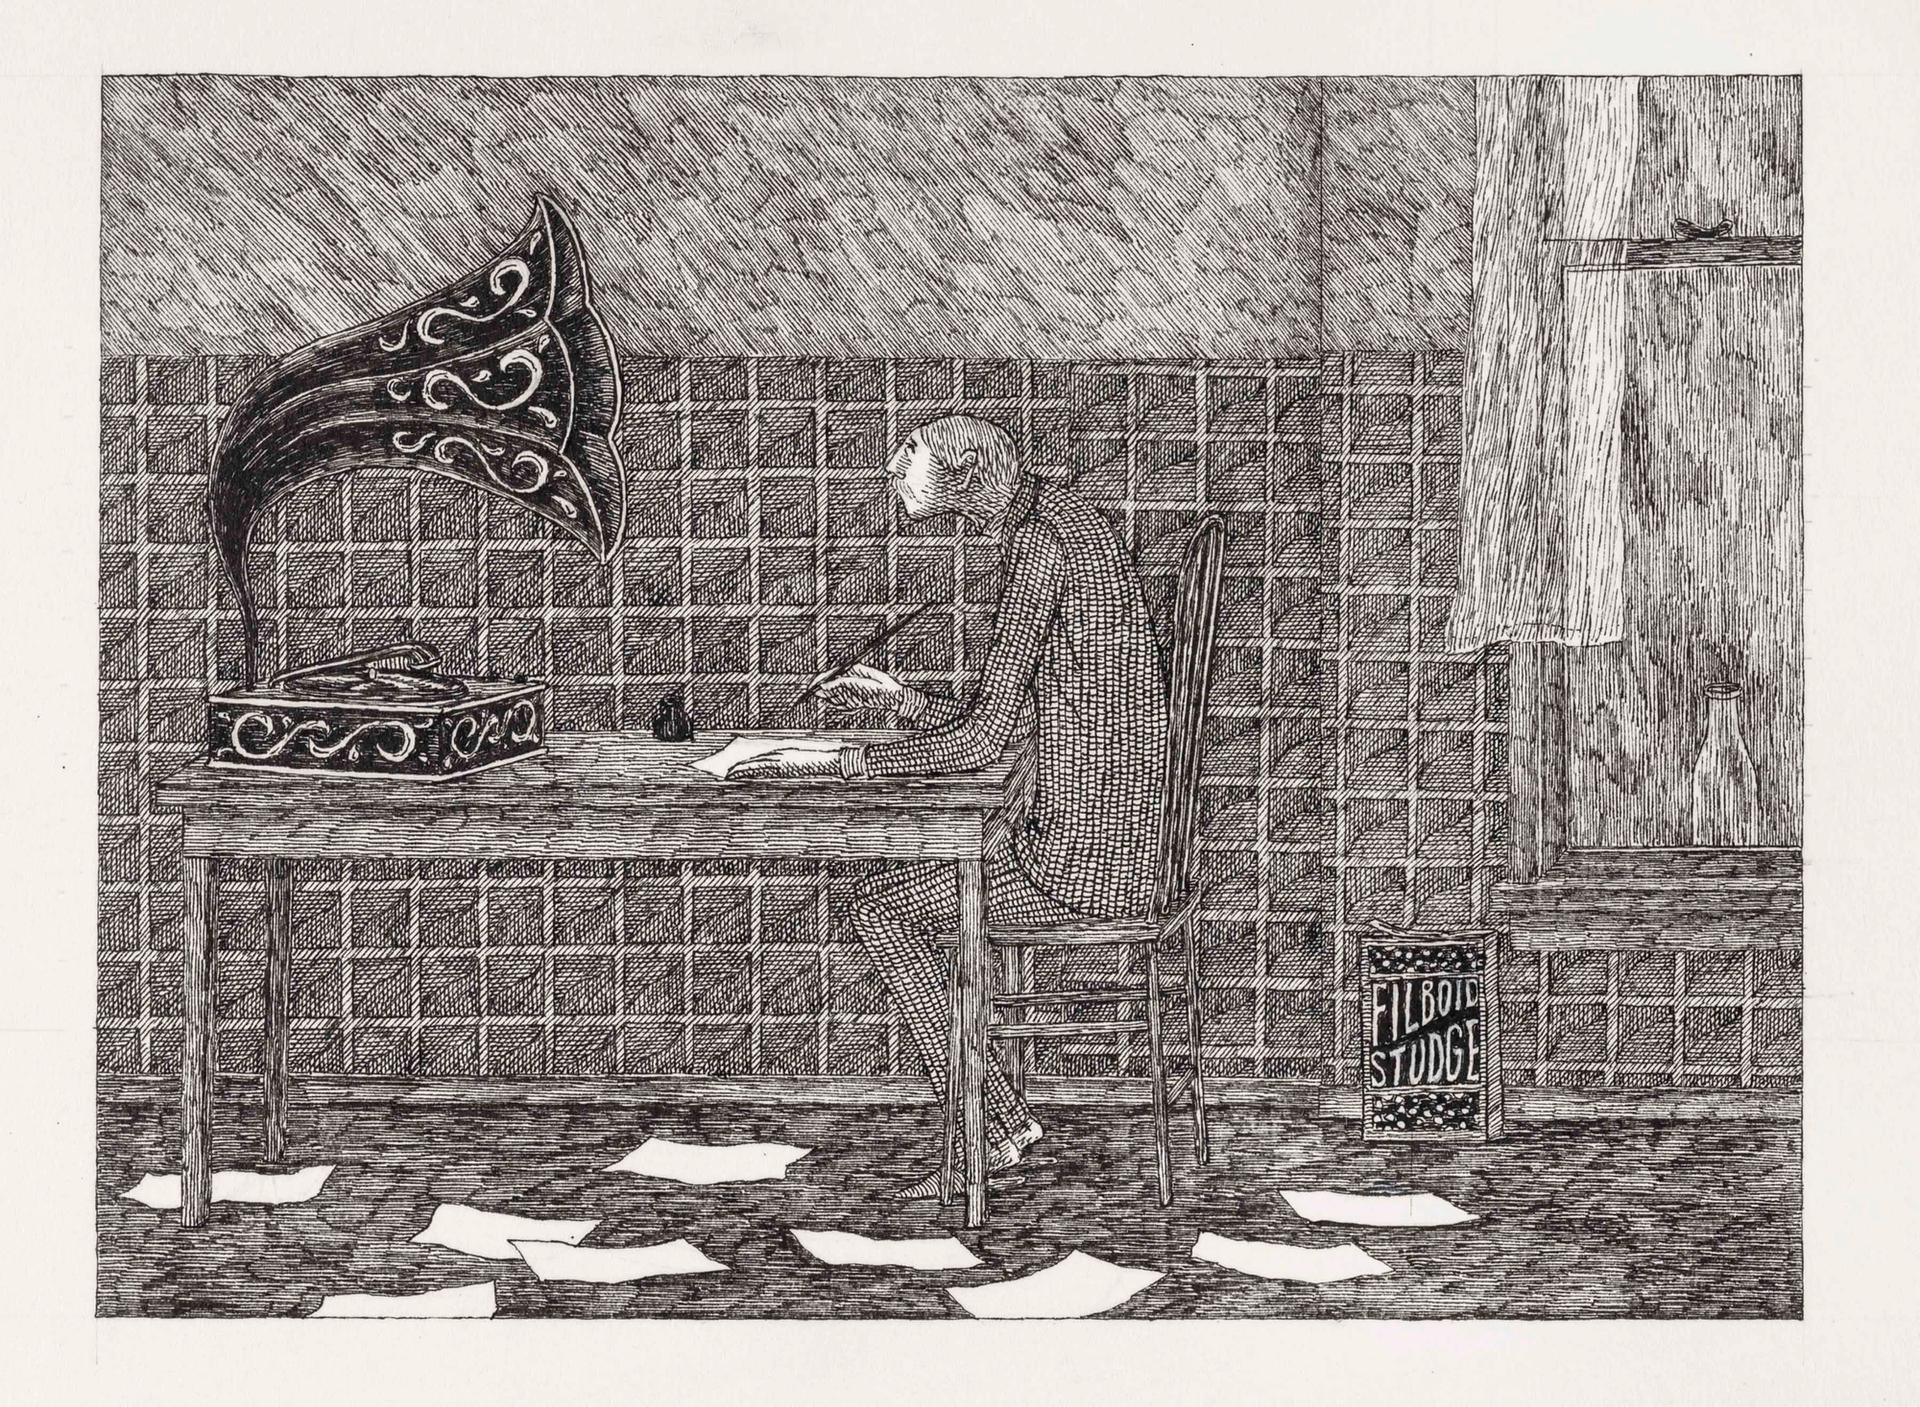 Without his clippings, Jasper now wrote long letters to Ortenzia, which went unanswered © The Edward Gorey Charitable Trust